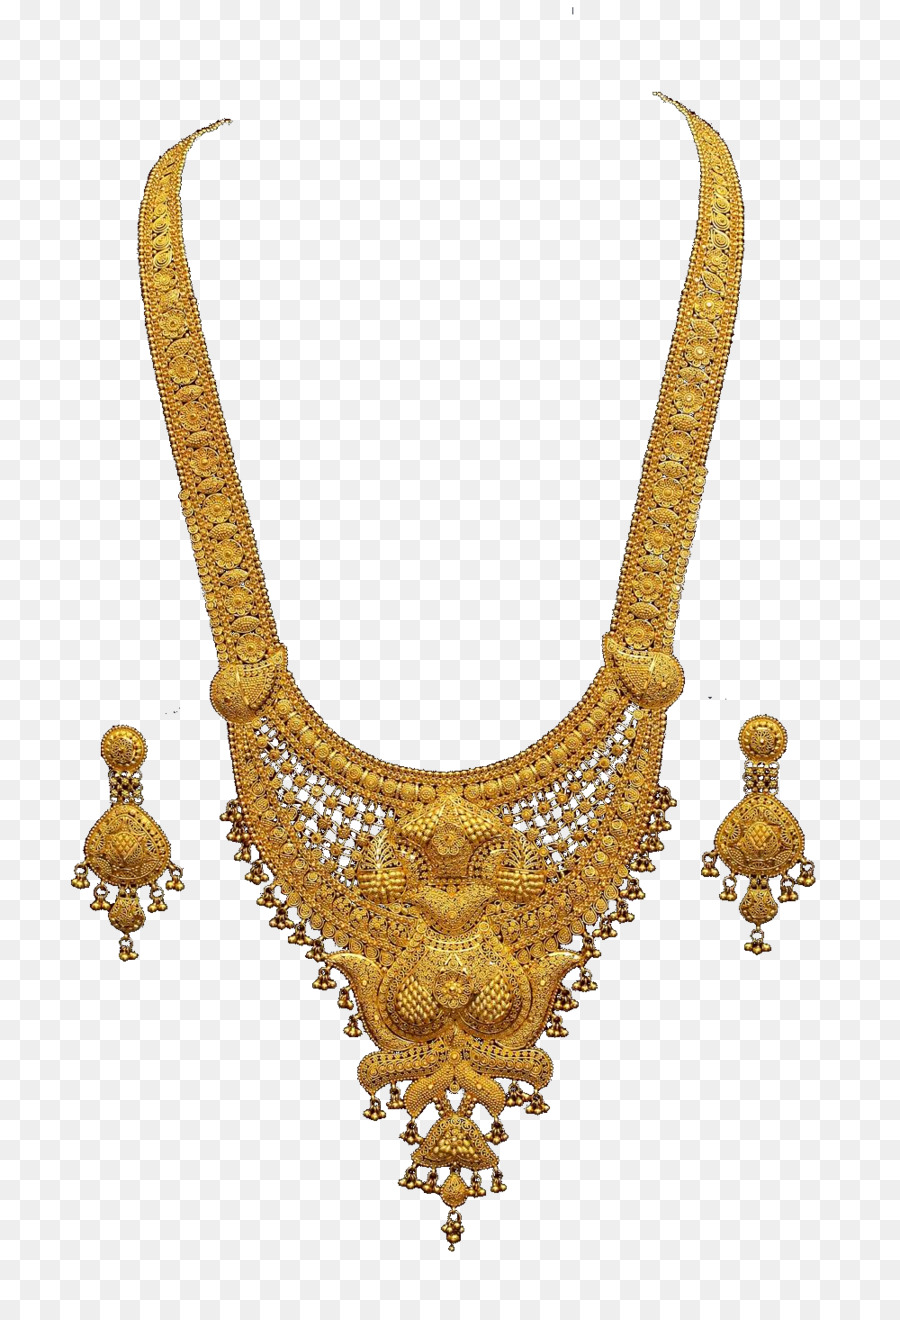 Clipart pune branches picture free Gold Necklace png download - 1000*1465 - Free Transparent Necklace ... picture free